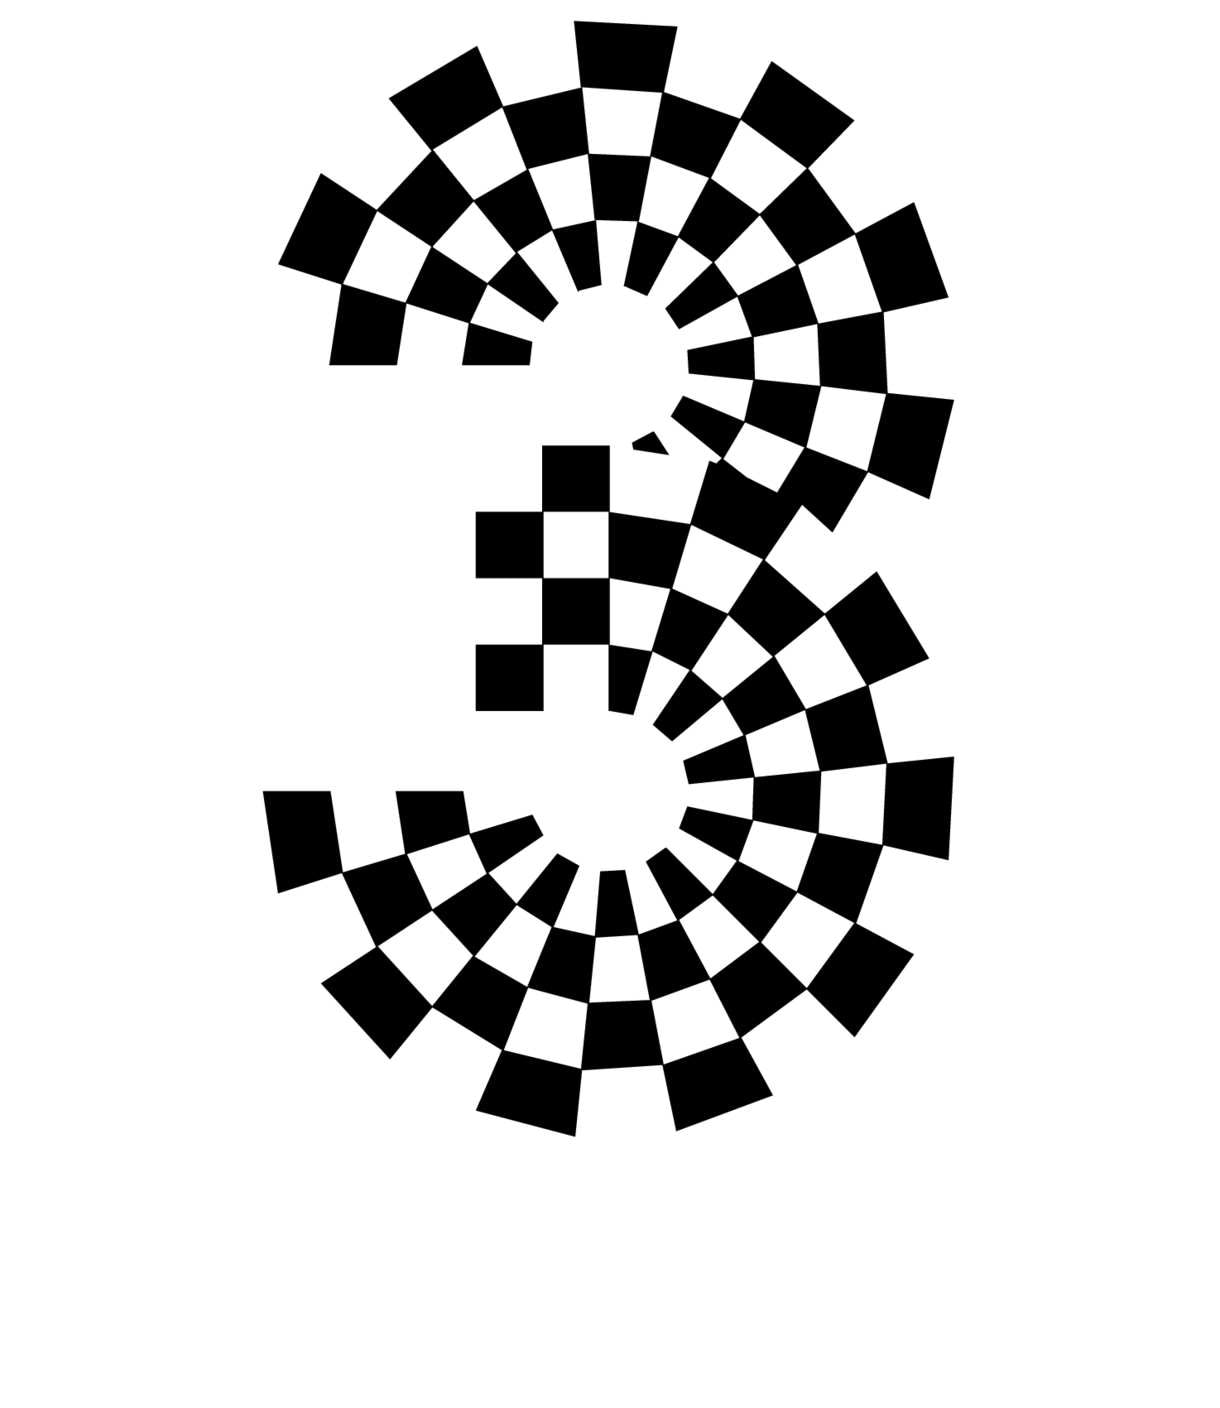 pattern-project-letters-28-1220x1407px